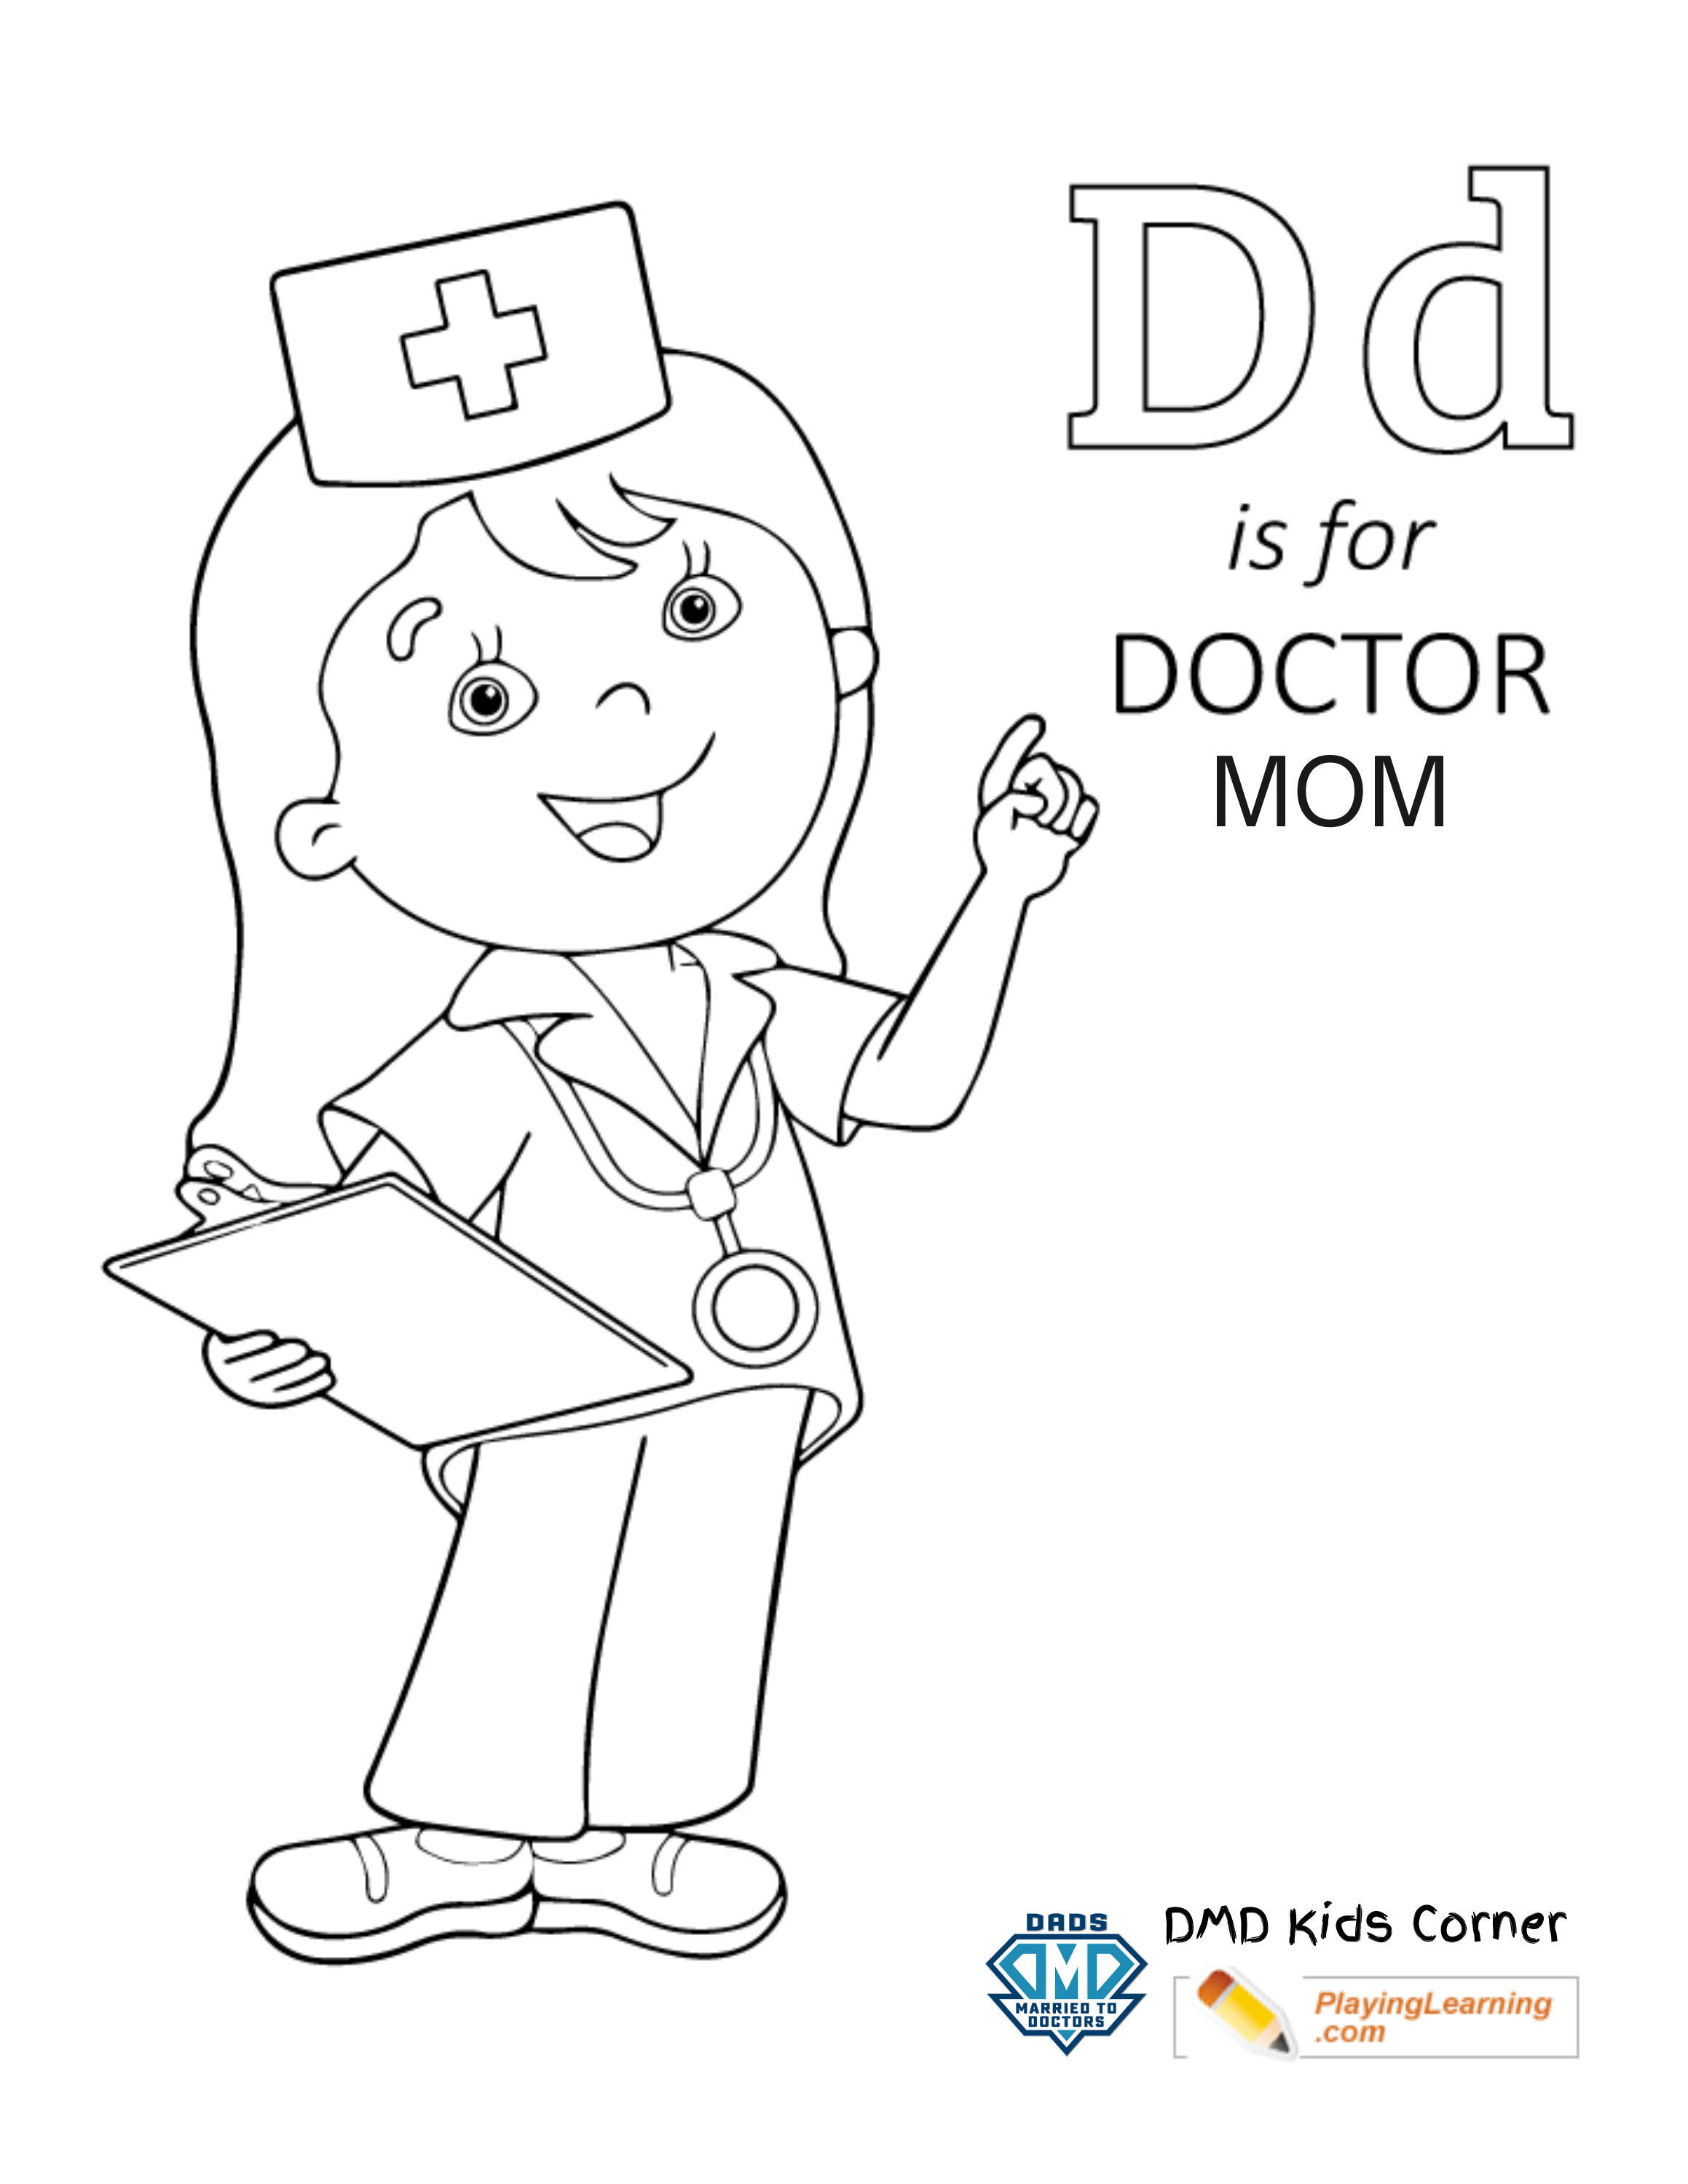 D is for Doctor Mom - Coloring Page